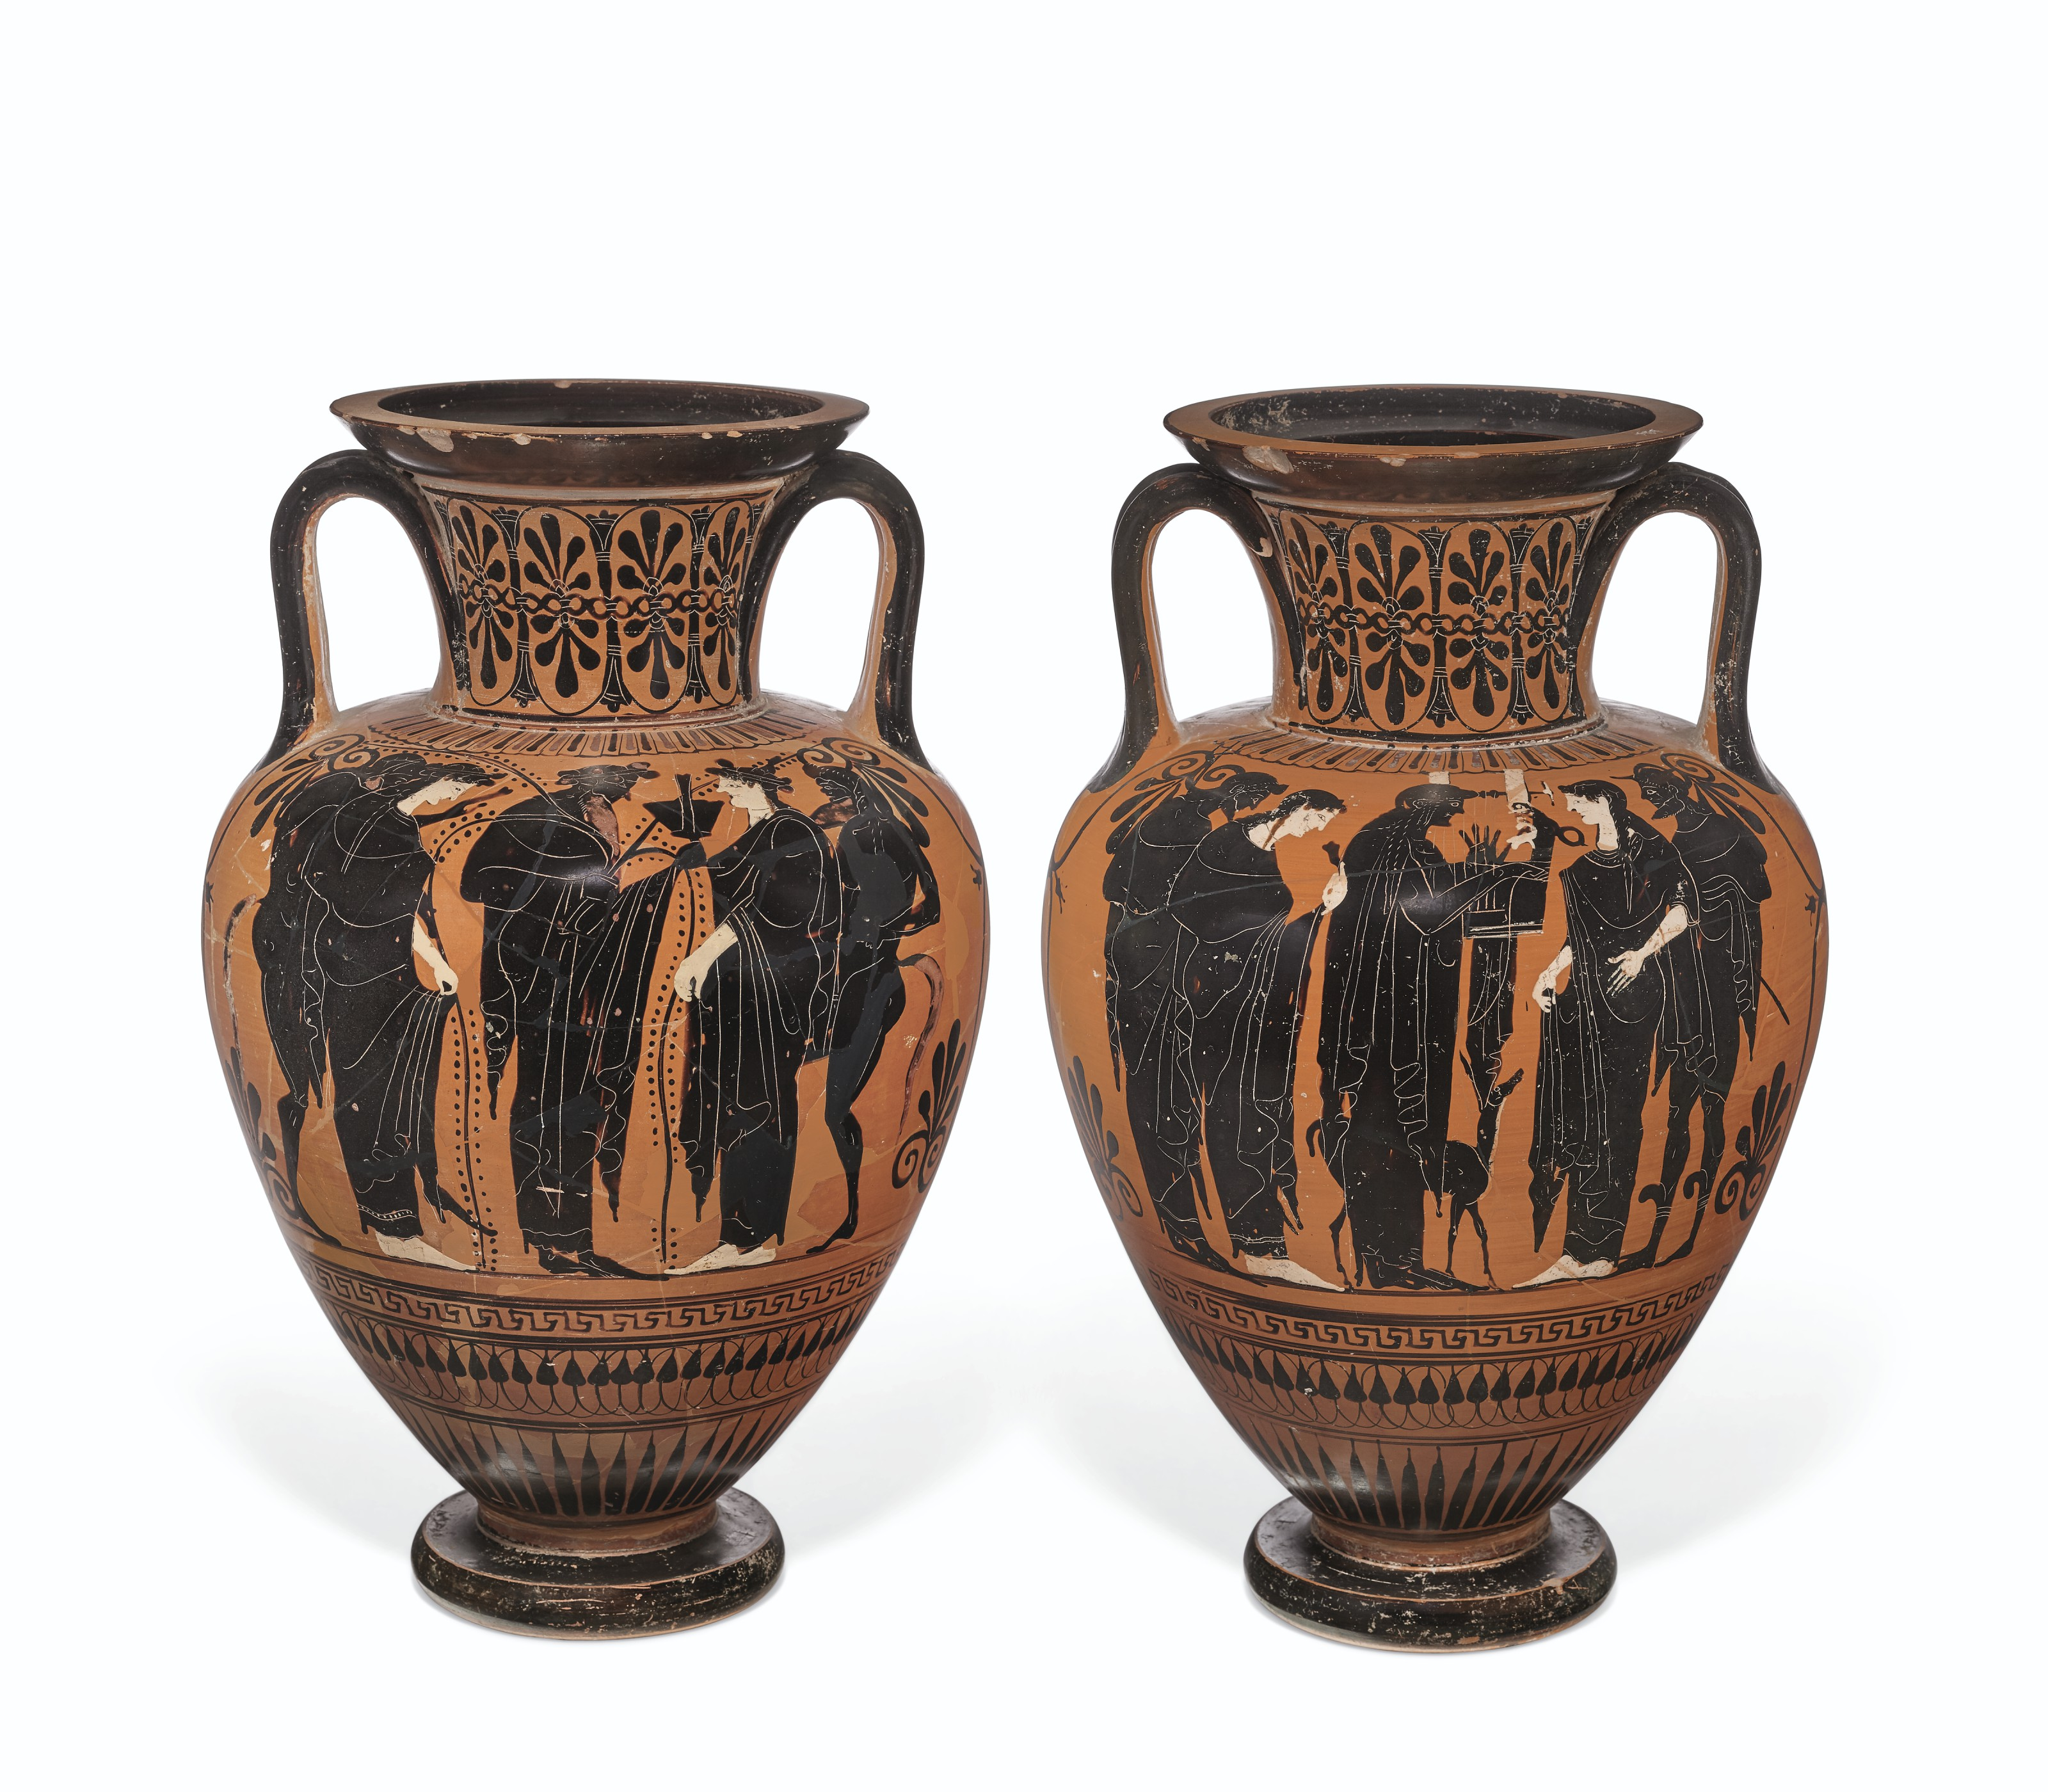 AN ATTIC BLACK FIGURE NIKOSTHENIC PYXIS ATTRIBUTED TO THE